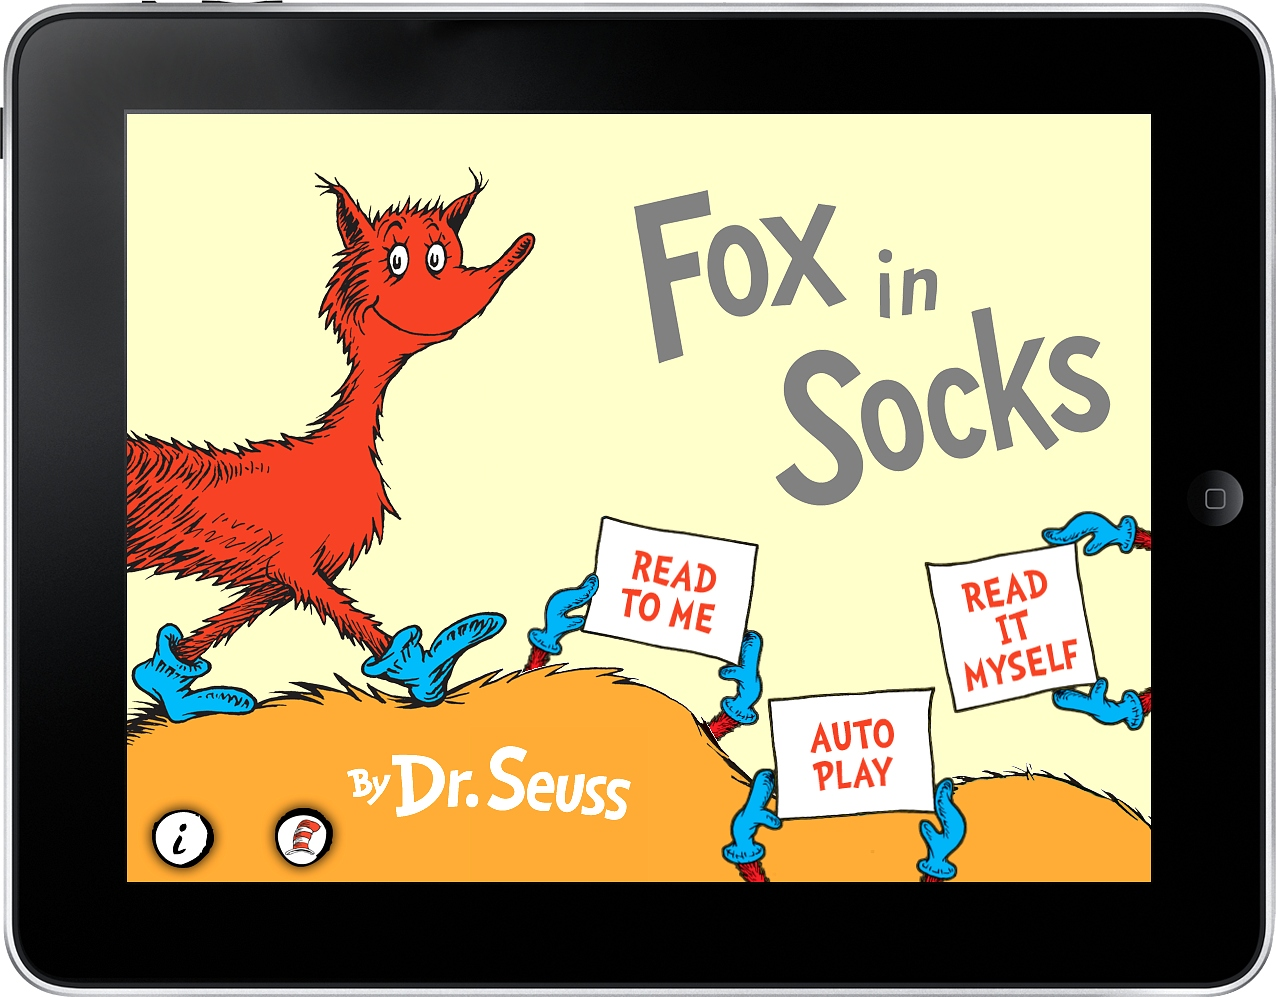 Foox In Socks Pictures To Pin